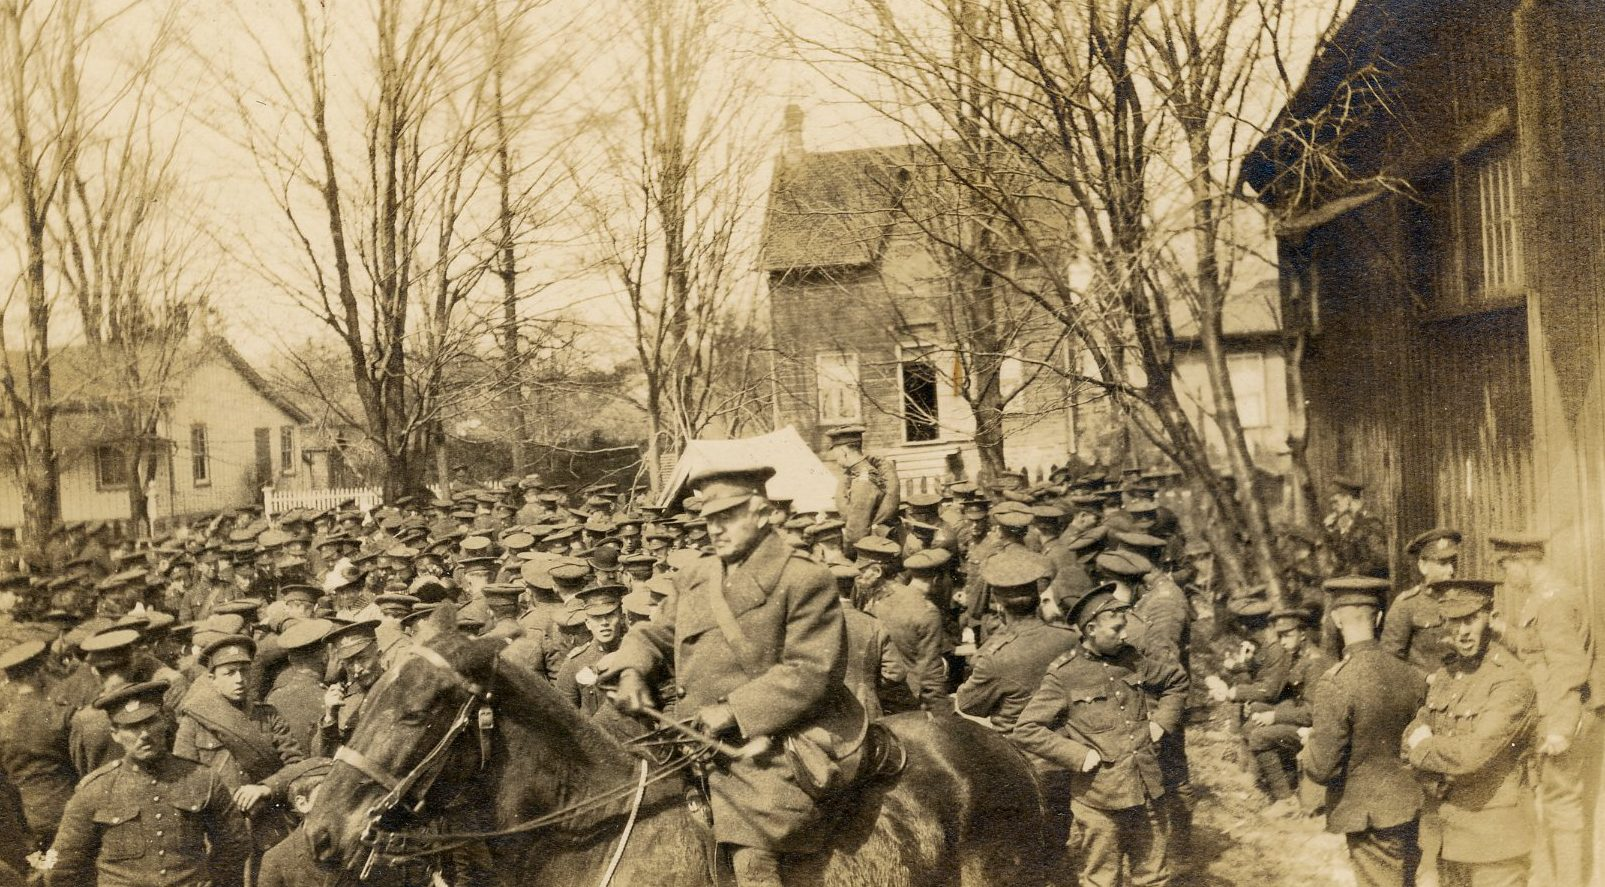 A black and white photograph of a large group of soldiers standing to the left of a wooden building; a mounted officer is in the foreground; trees and houses in the background